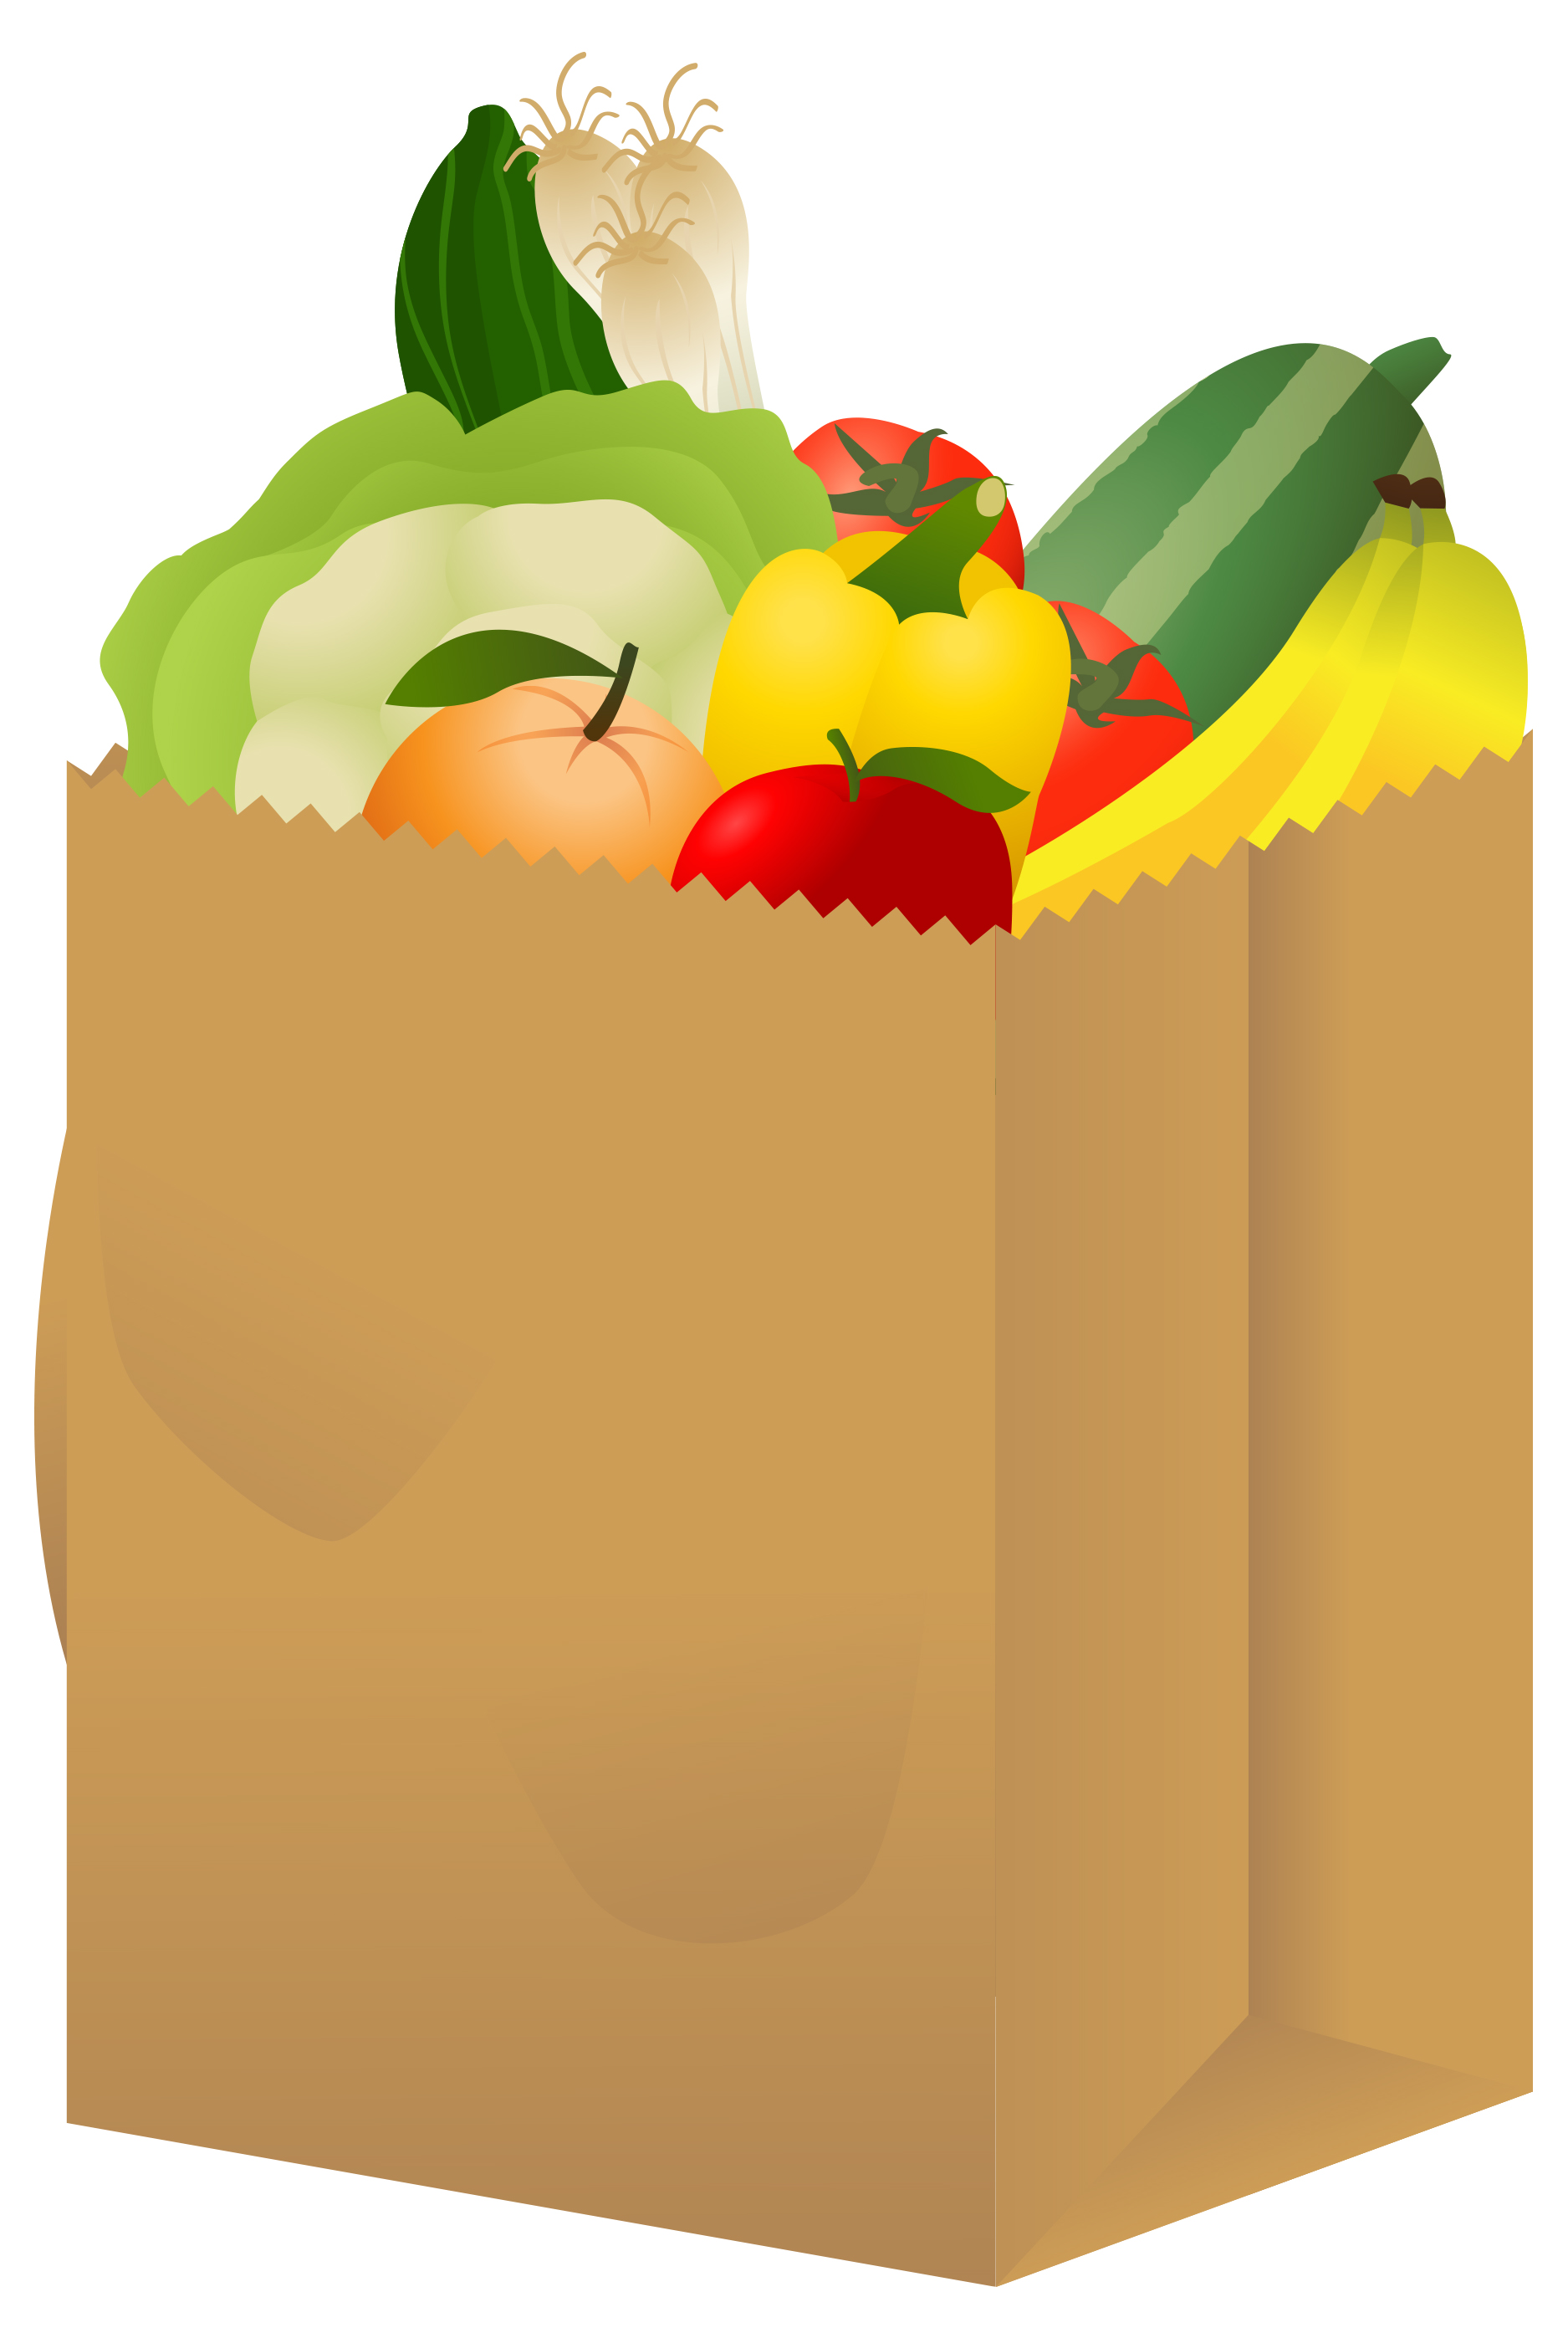 1875x2795 Free Grocery Clipart